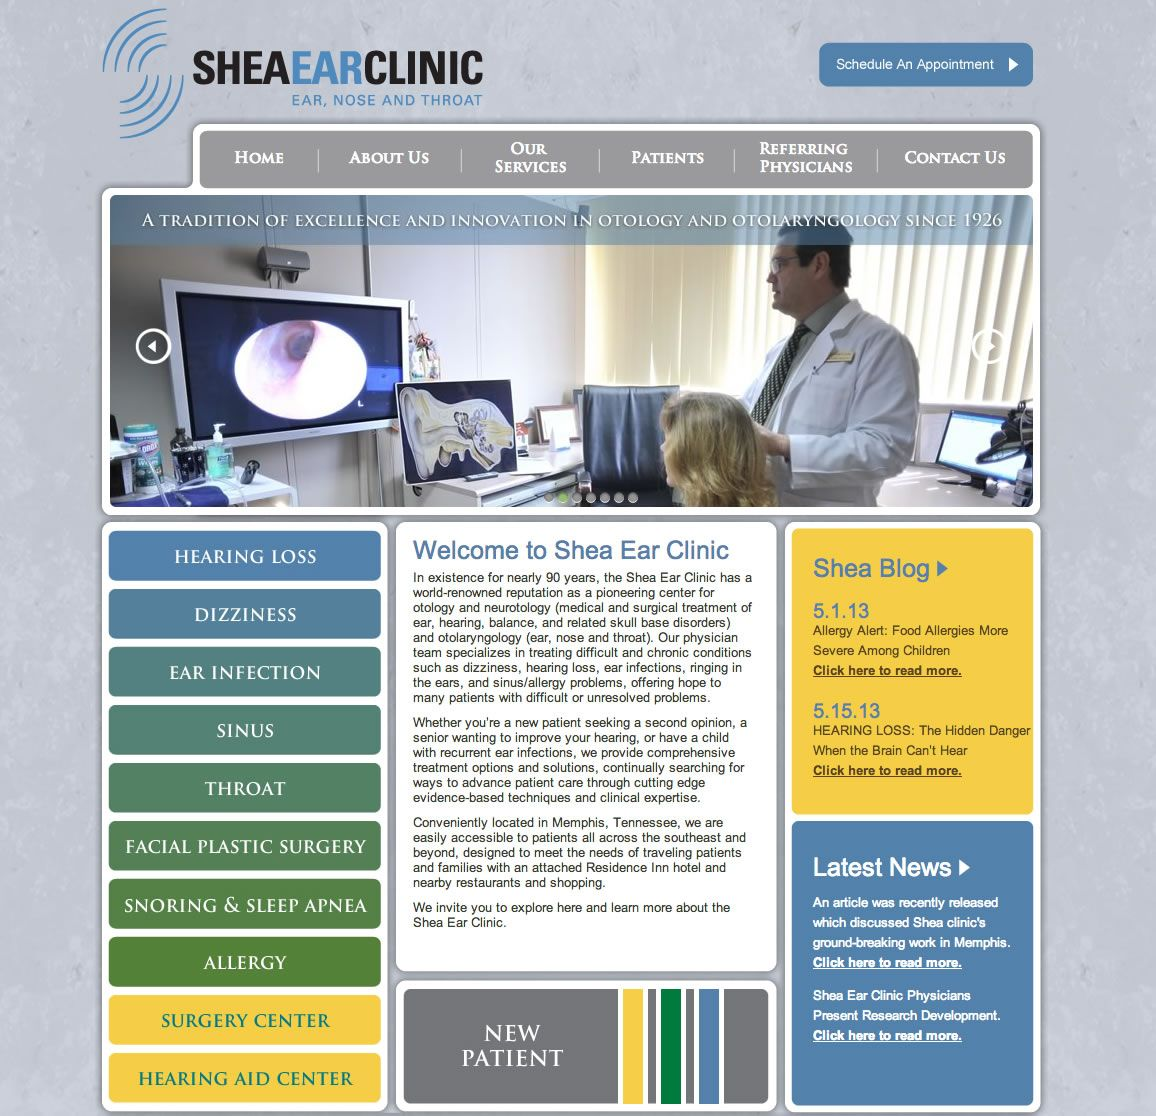 Shea ear clinic ear nose and throat specialists in memphis tn